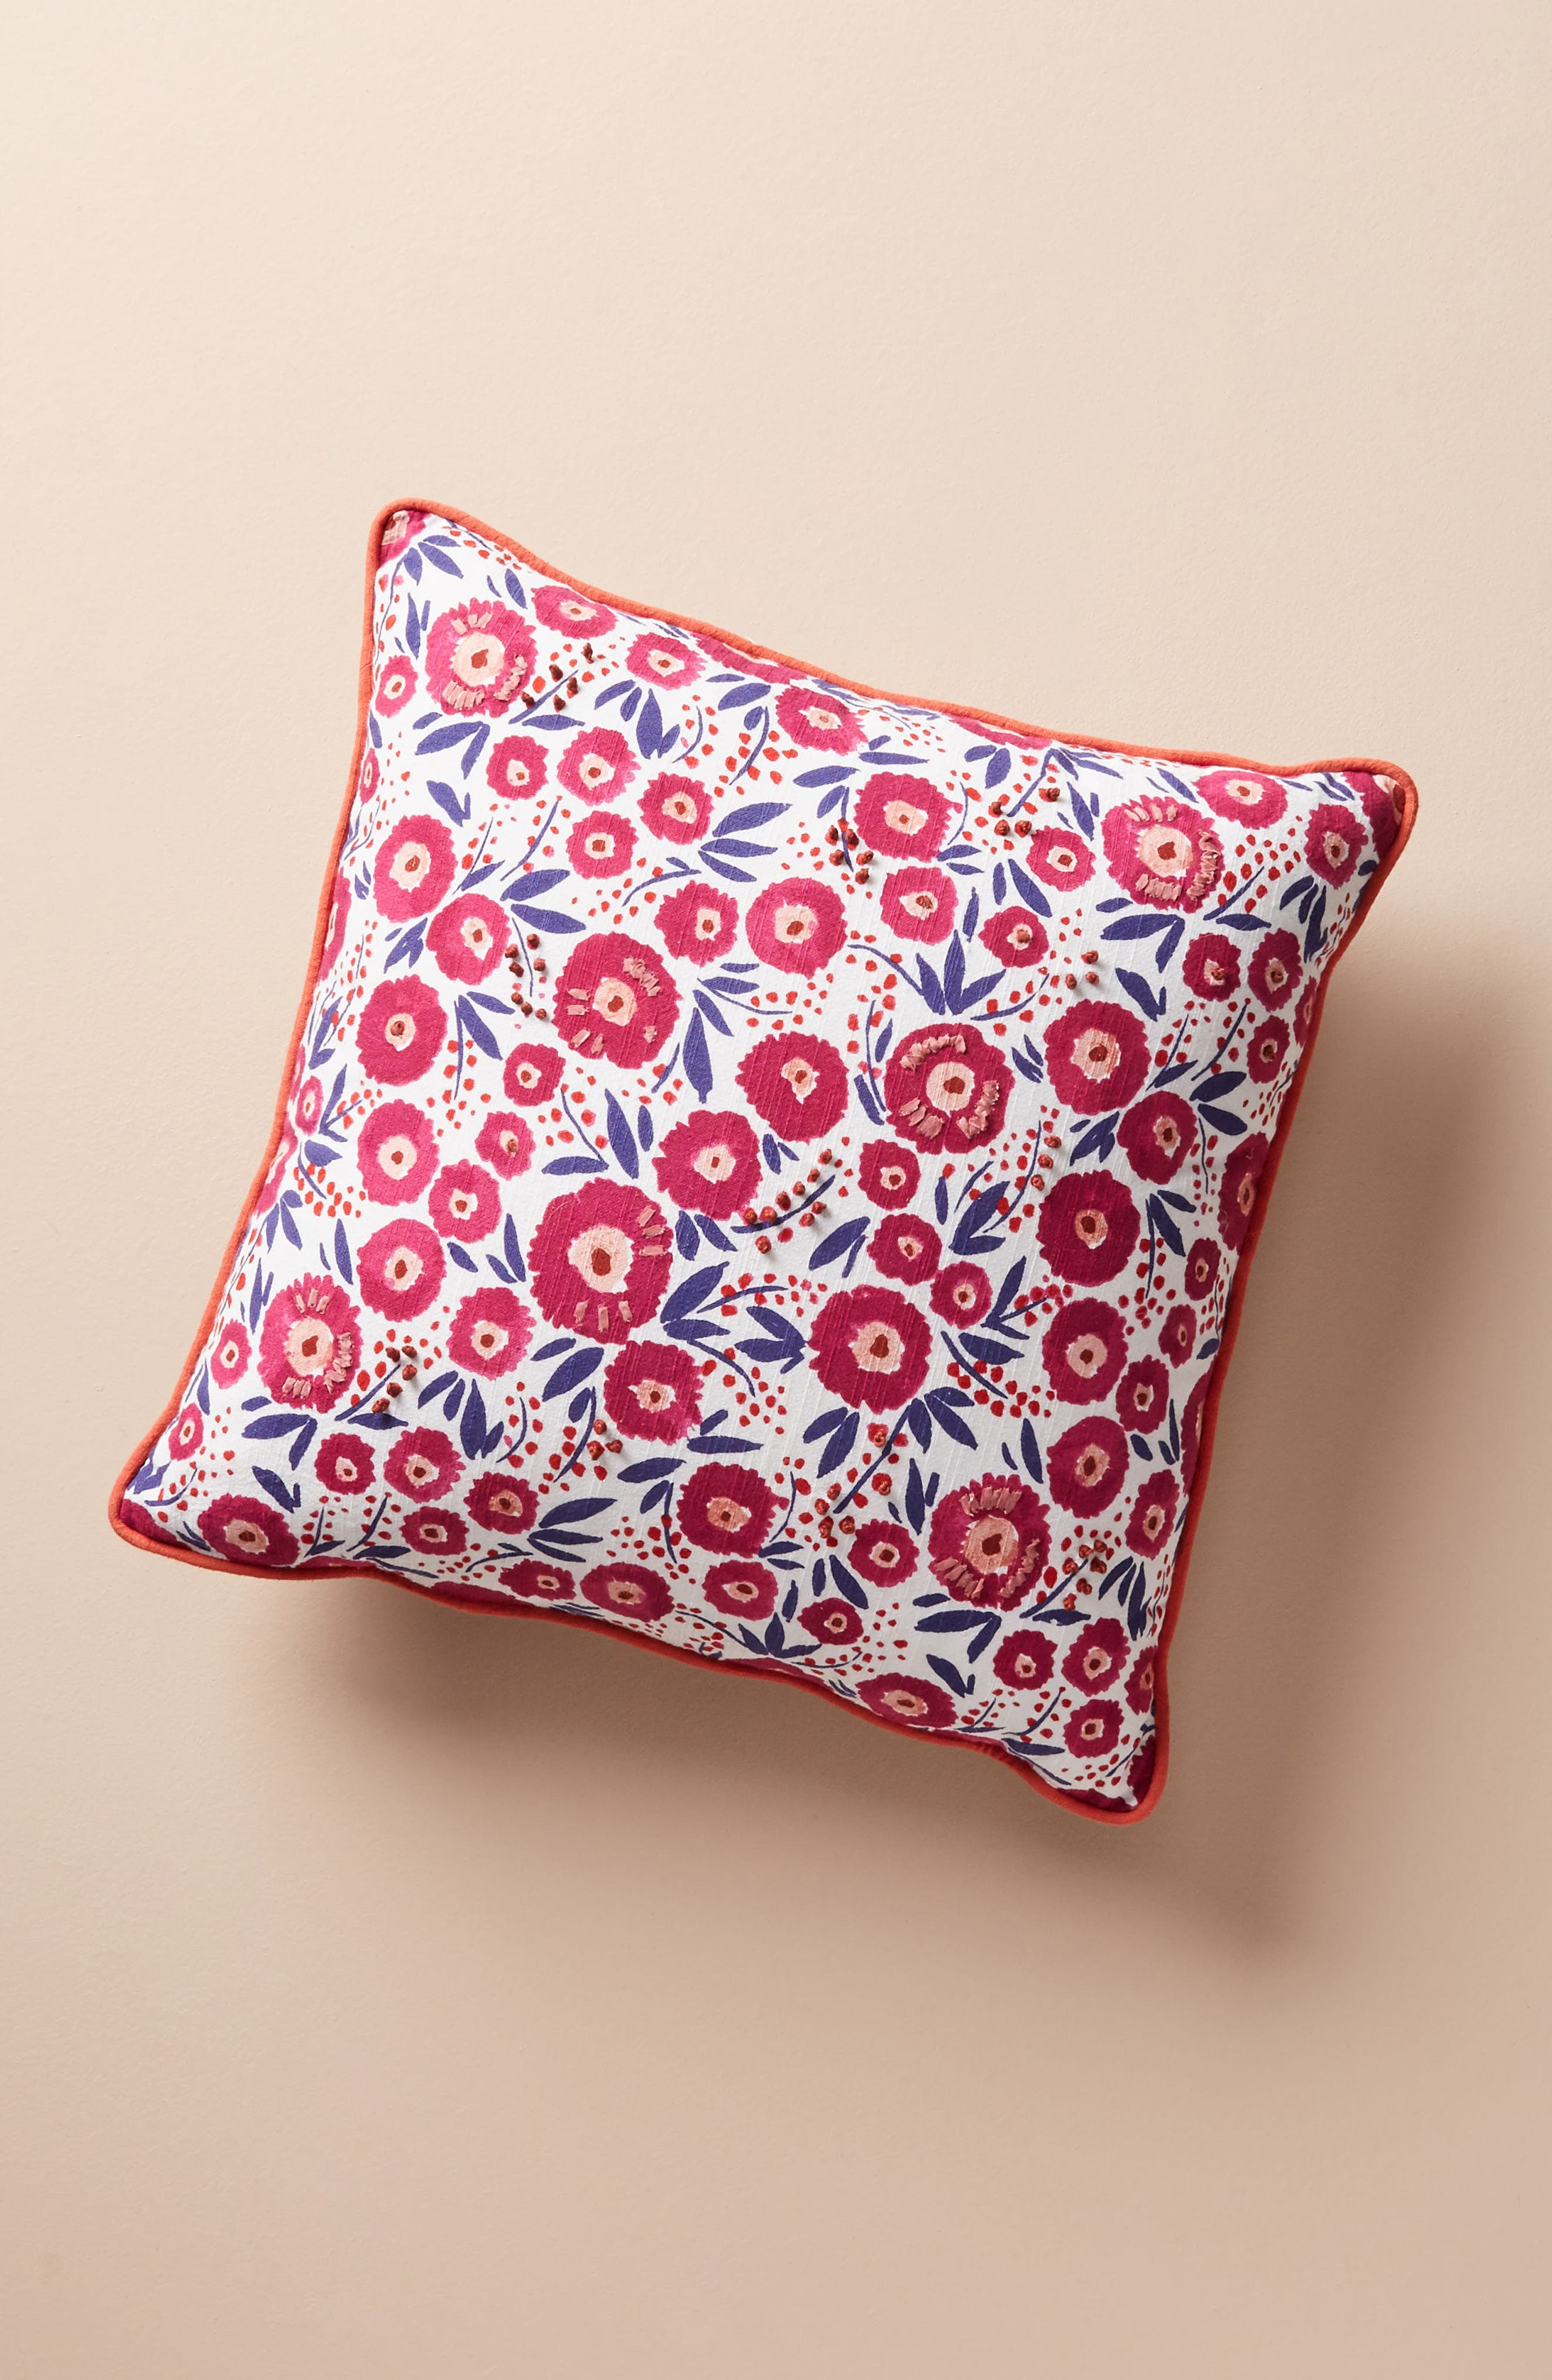 Painted Poppies Accent Pillow,                             Main thumbnail 1, color,                             650